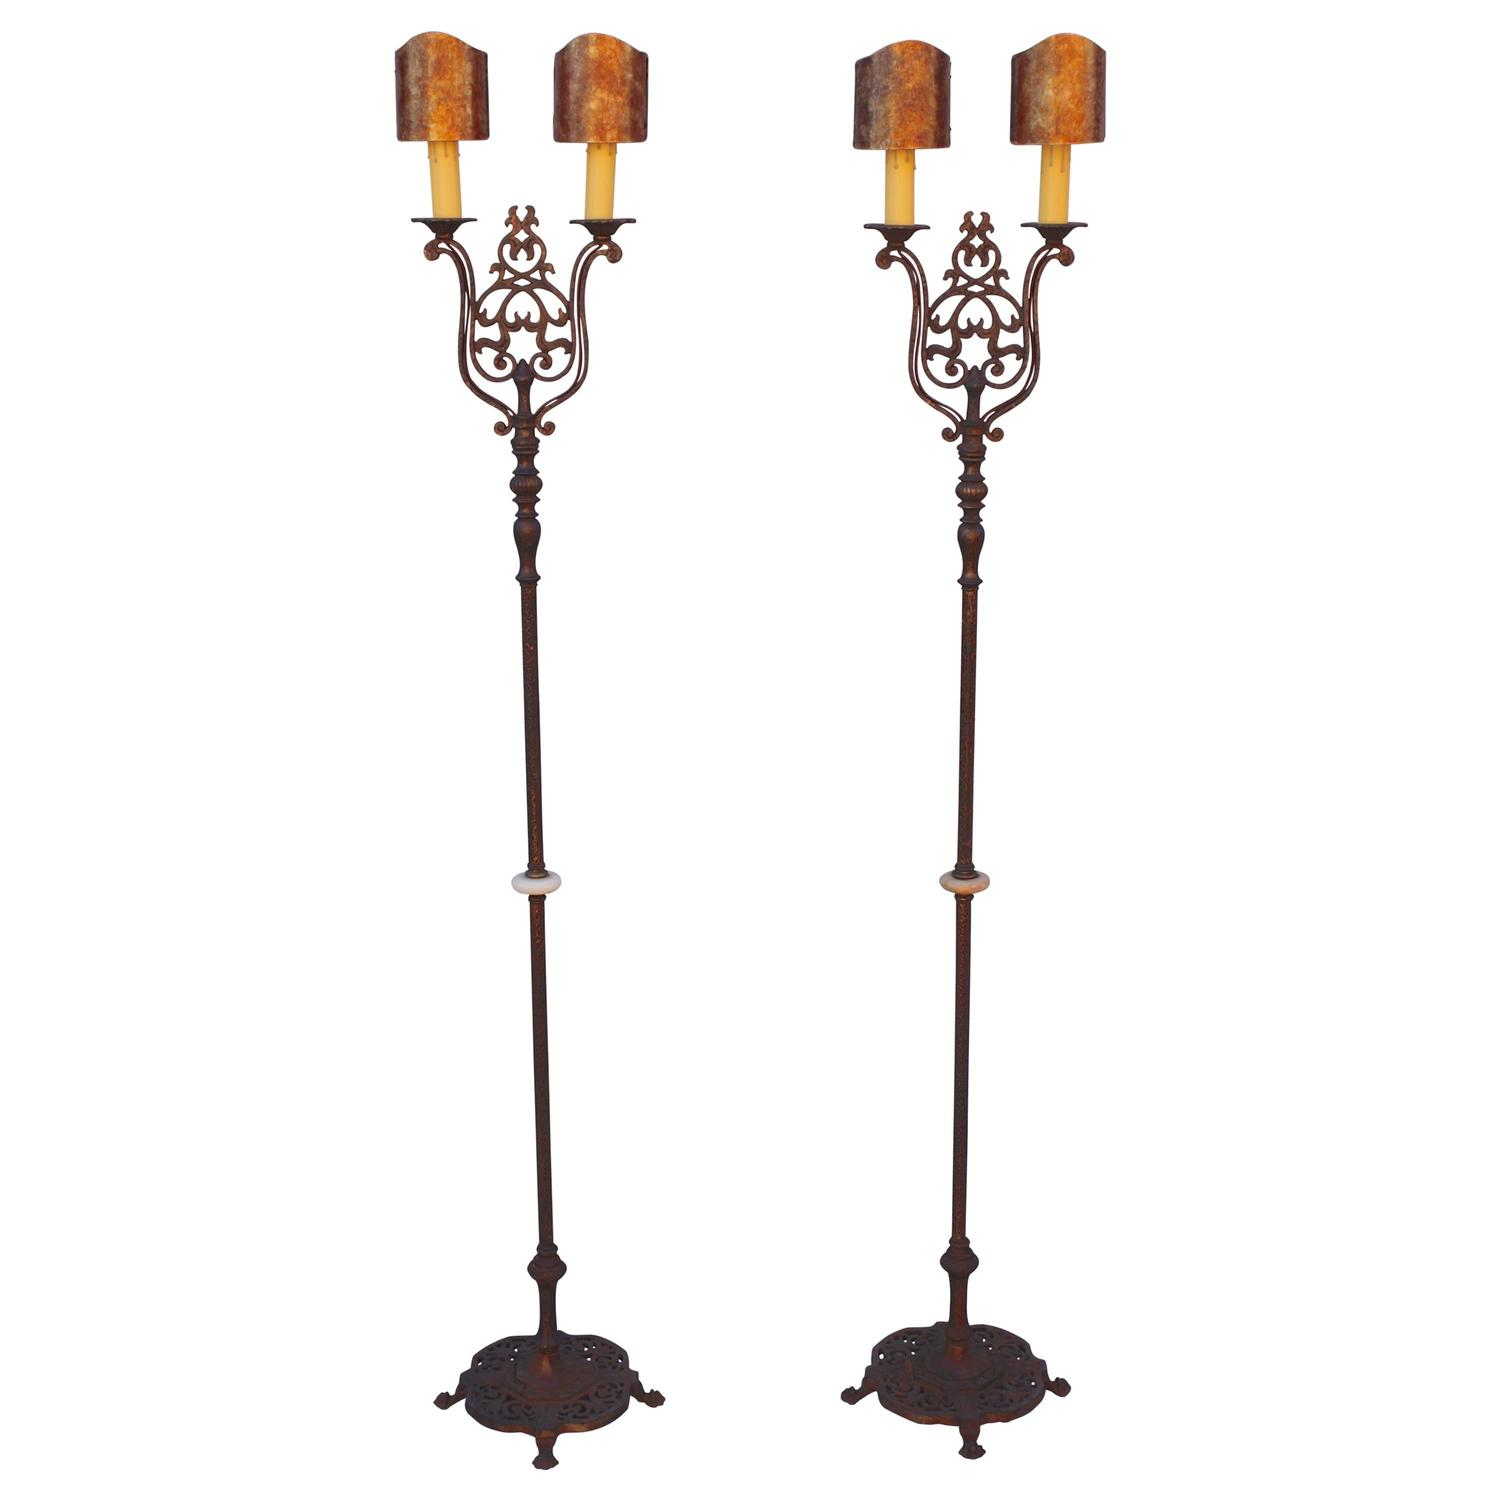 Antique pair of 1920s double floor lamp torchieres at 1stdibs for 1920 floor lamp